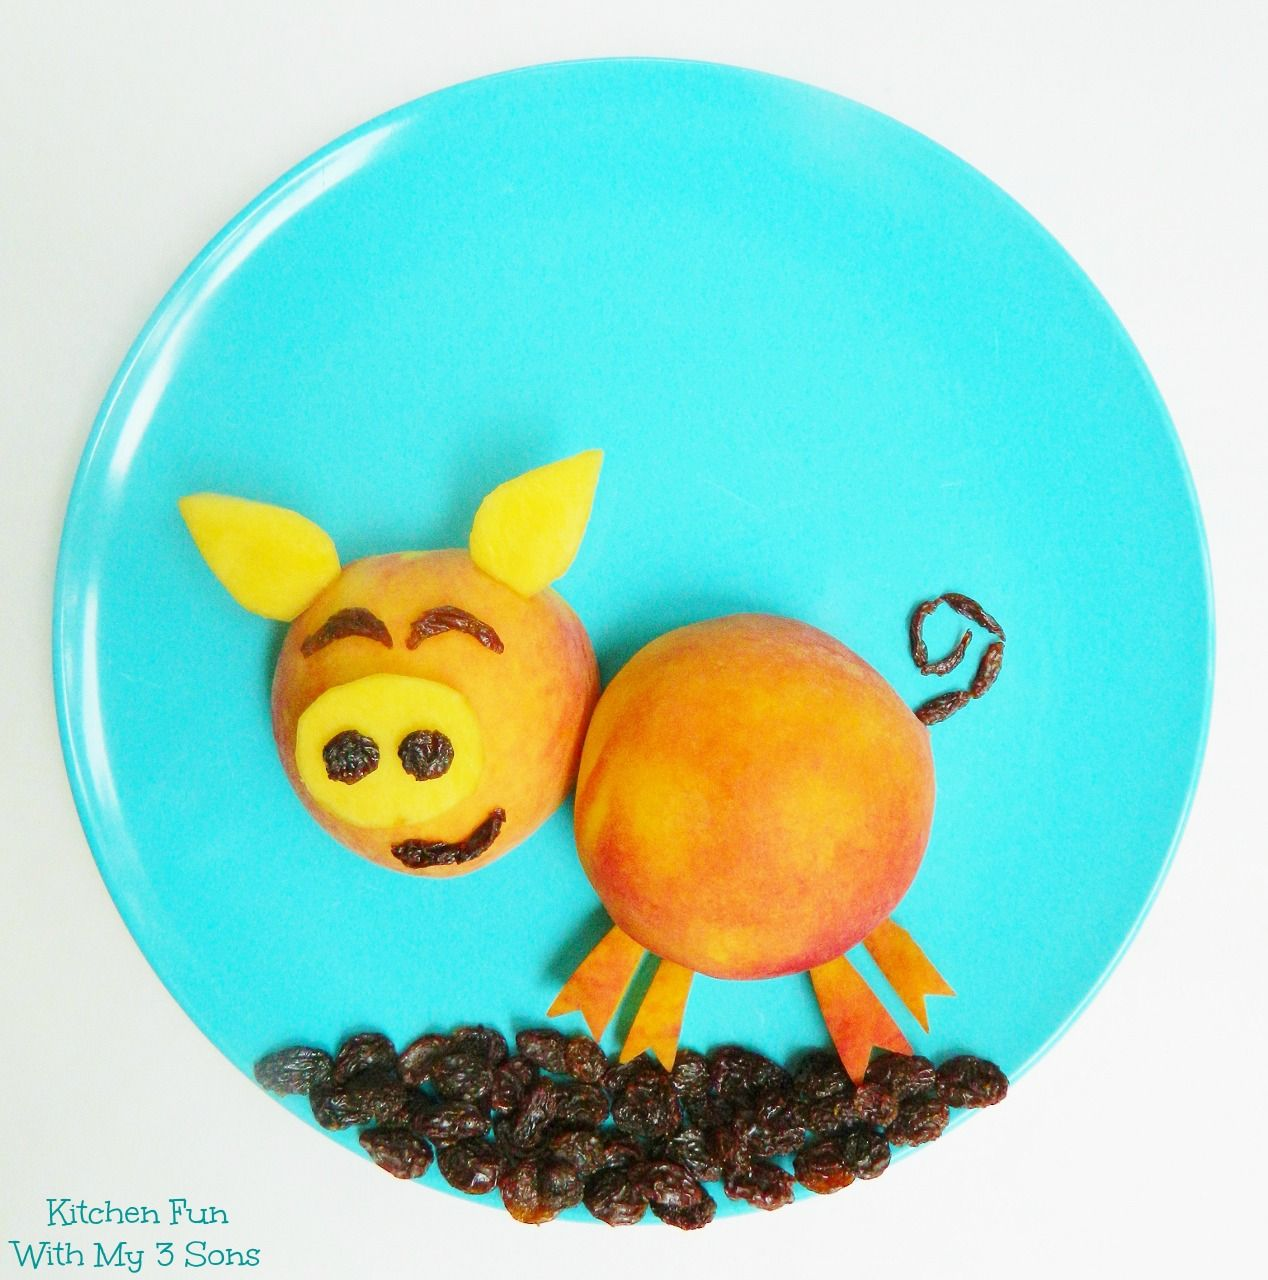 Peachy Piggy...a fun way to get the kids to eat a healthy snack from KitchenFunWithMy3Sons.com